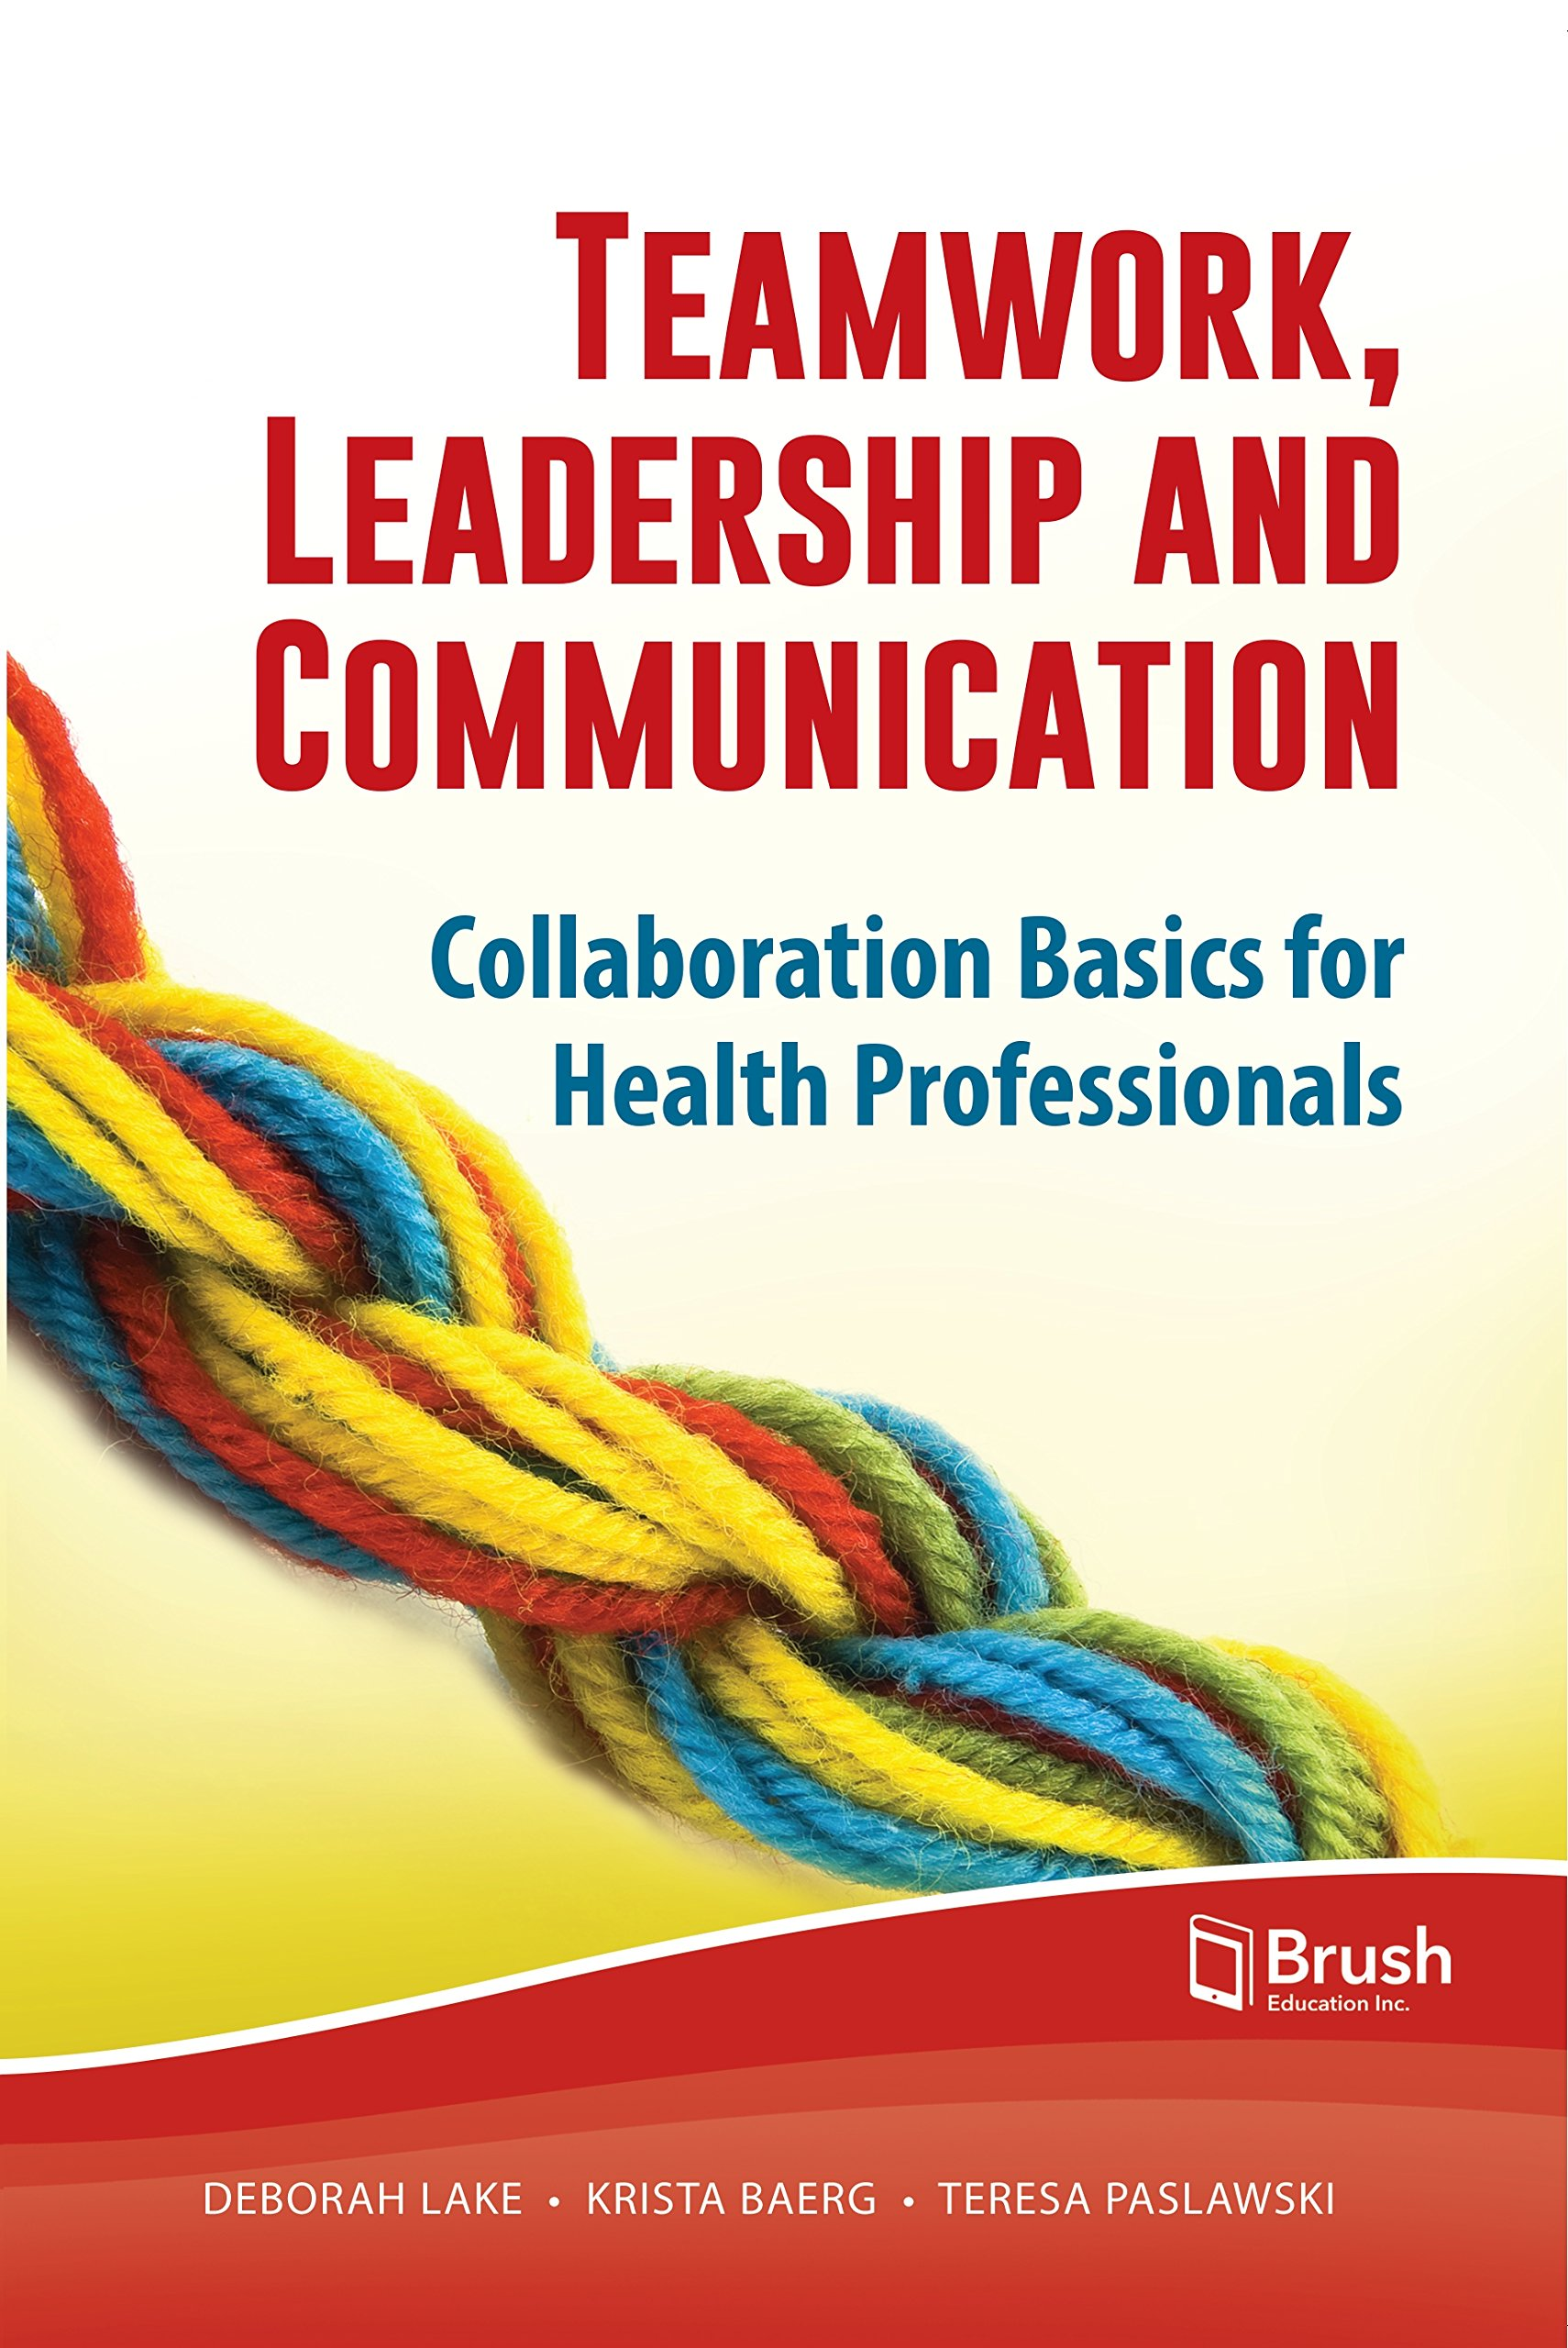 Teamwork, leadership and communication : collaboration basics for health professionals /